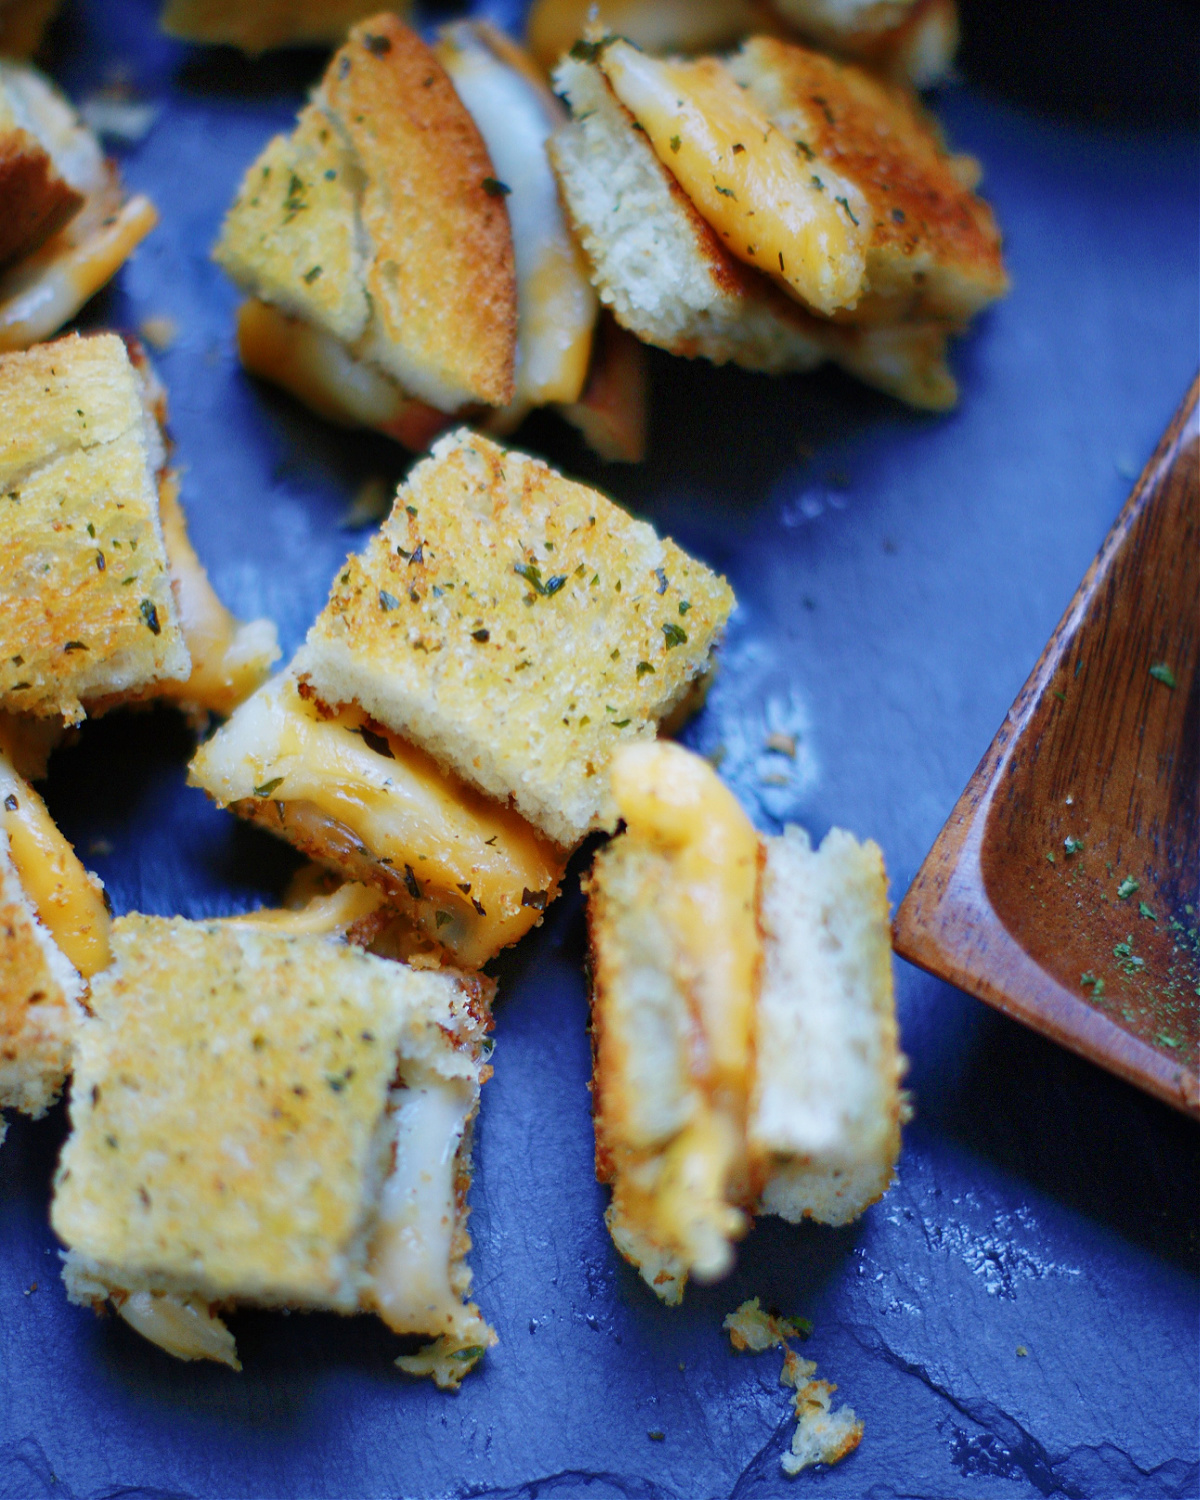 up close of grilled cheese croutons to show texture and ingredients